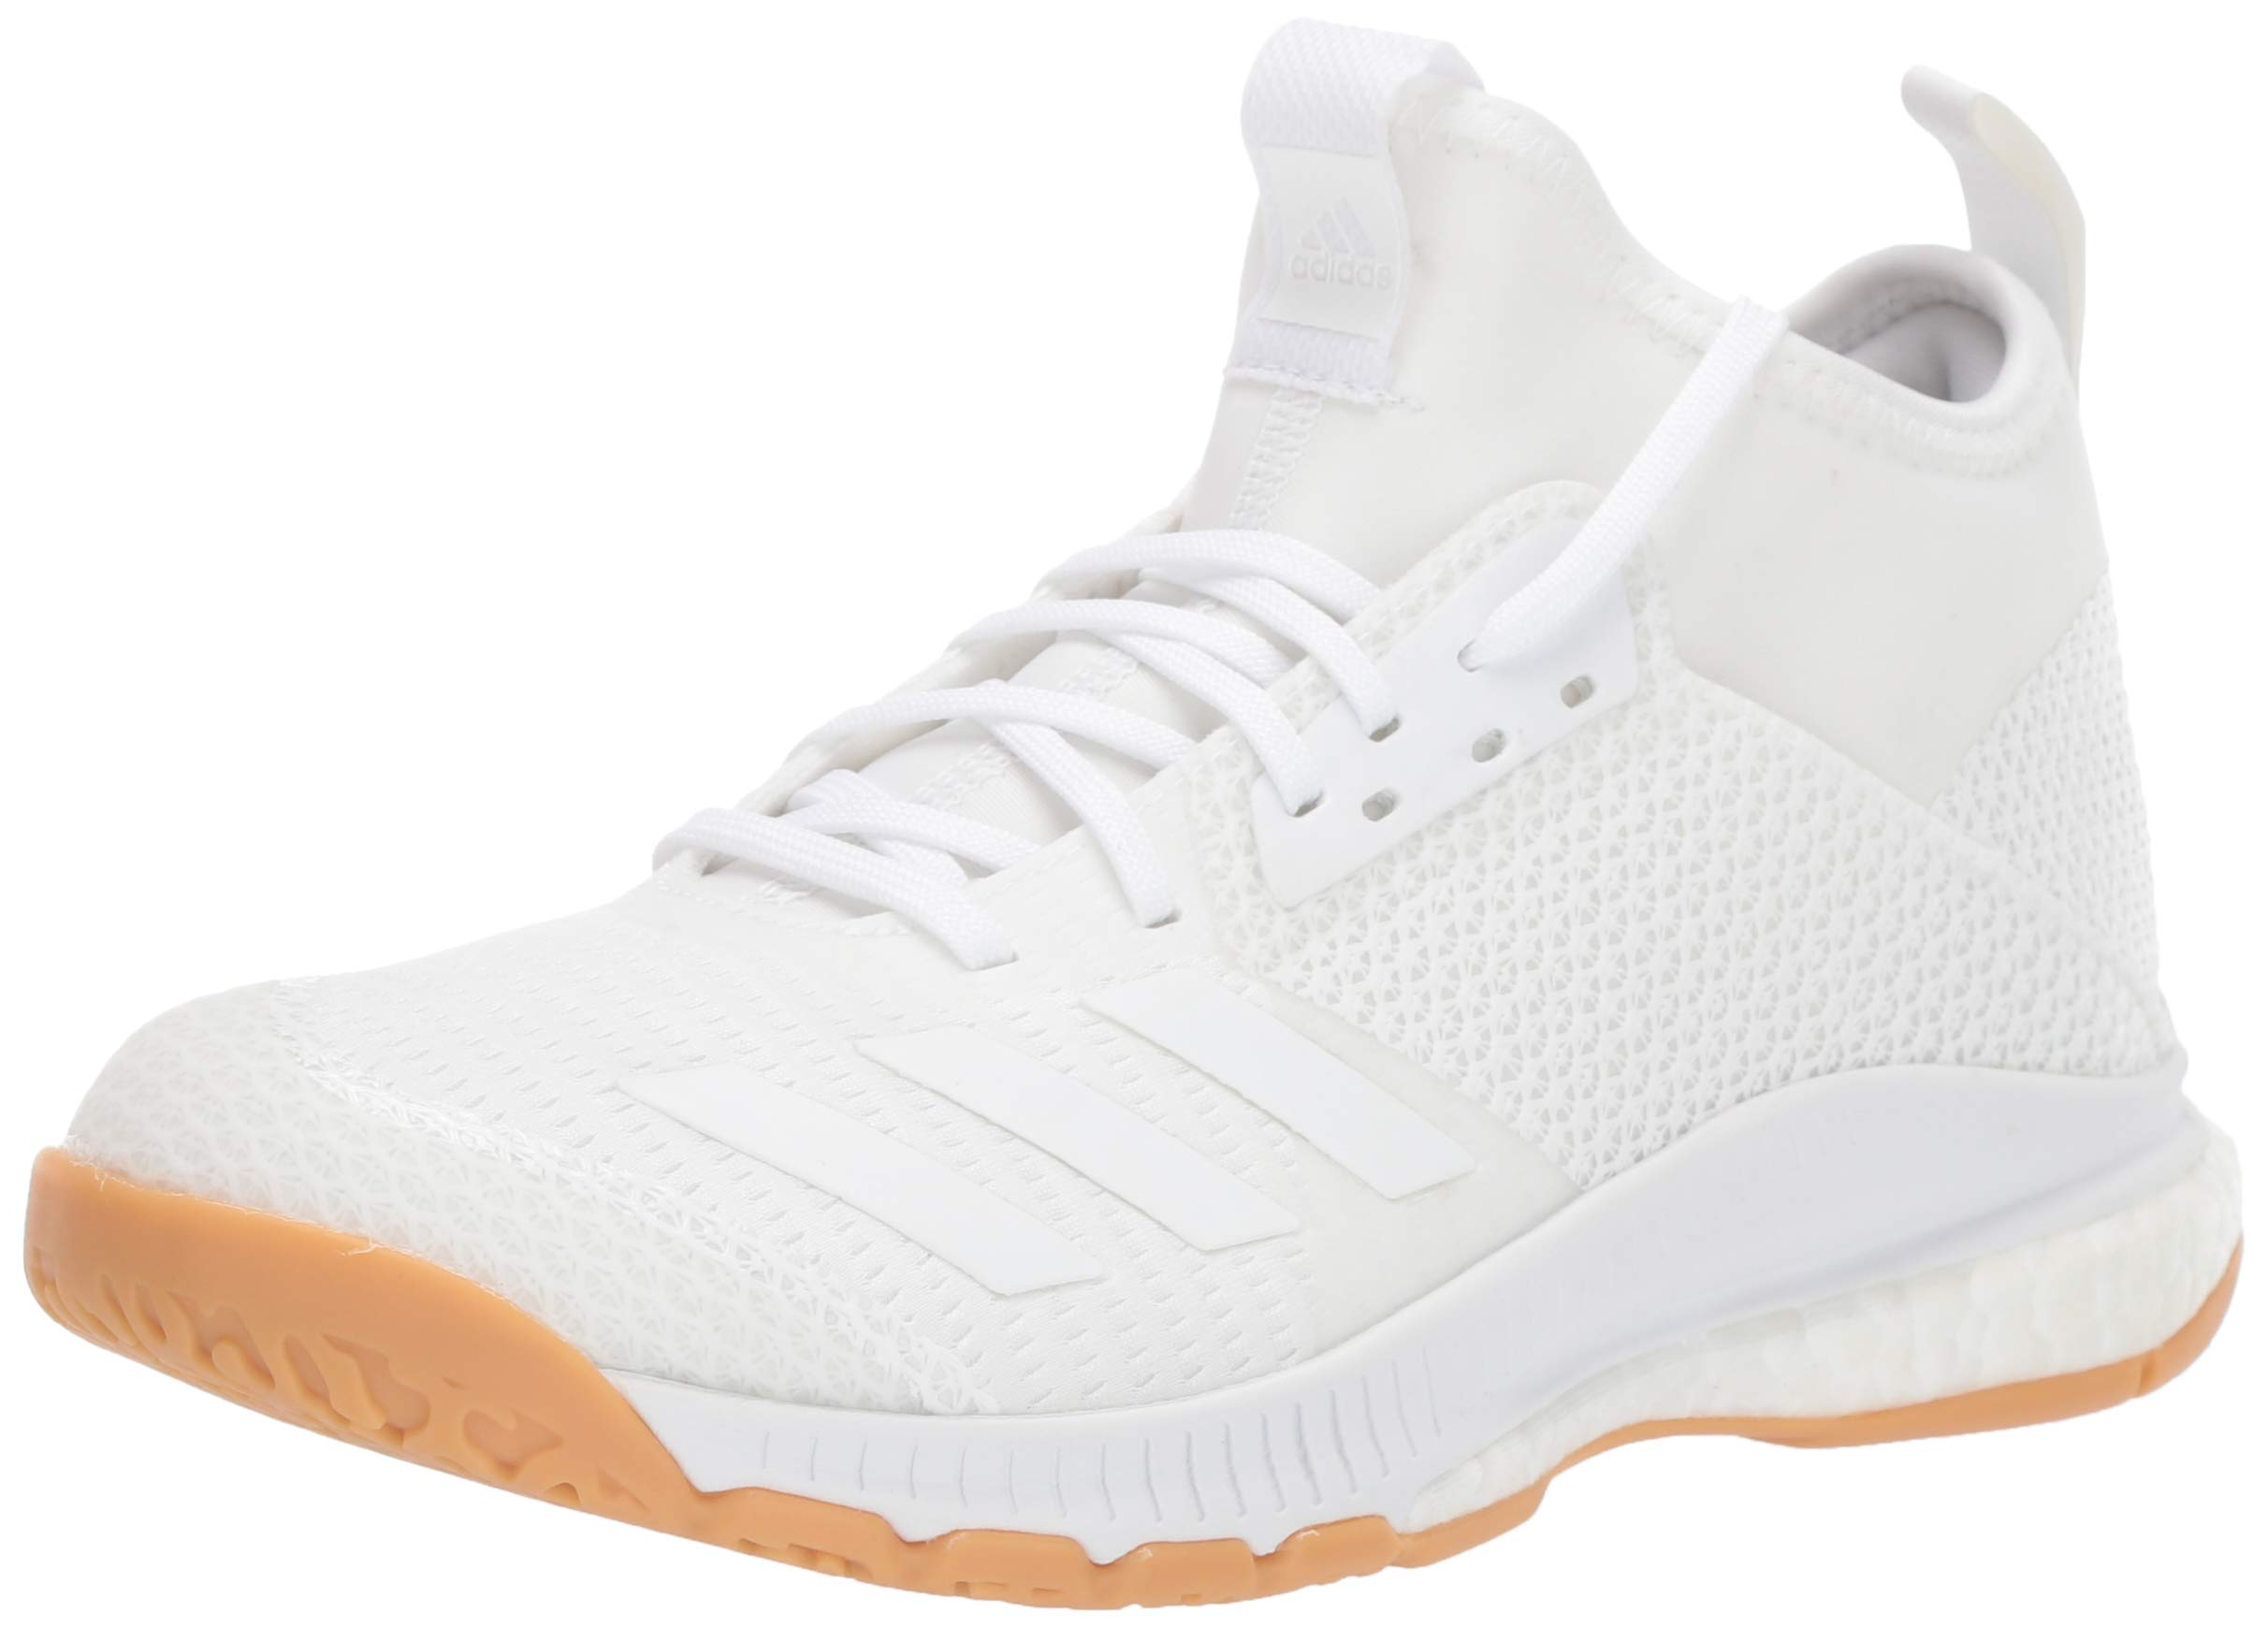 adidas Women's Crazyflight X 3 Mid Volleyball Shoe, White/Gum, 9 M US by adidas